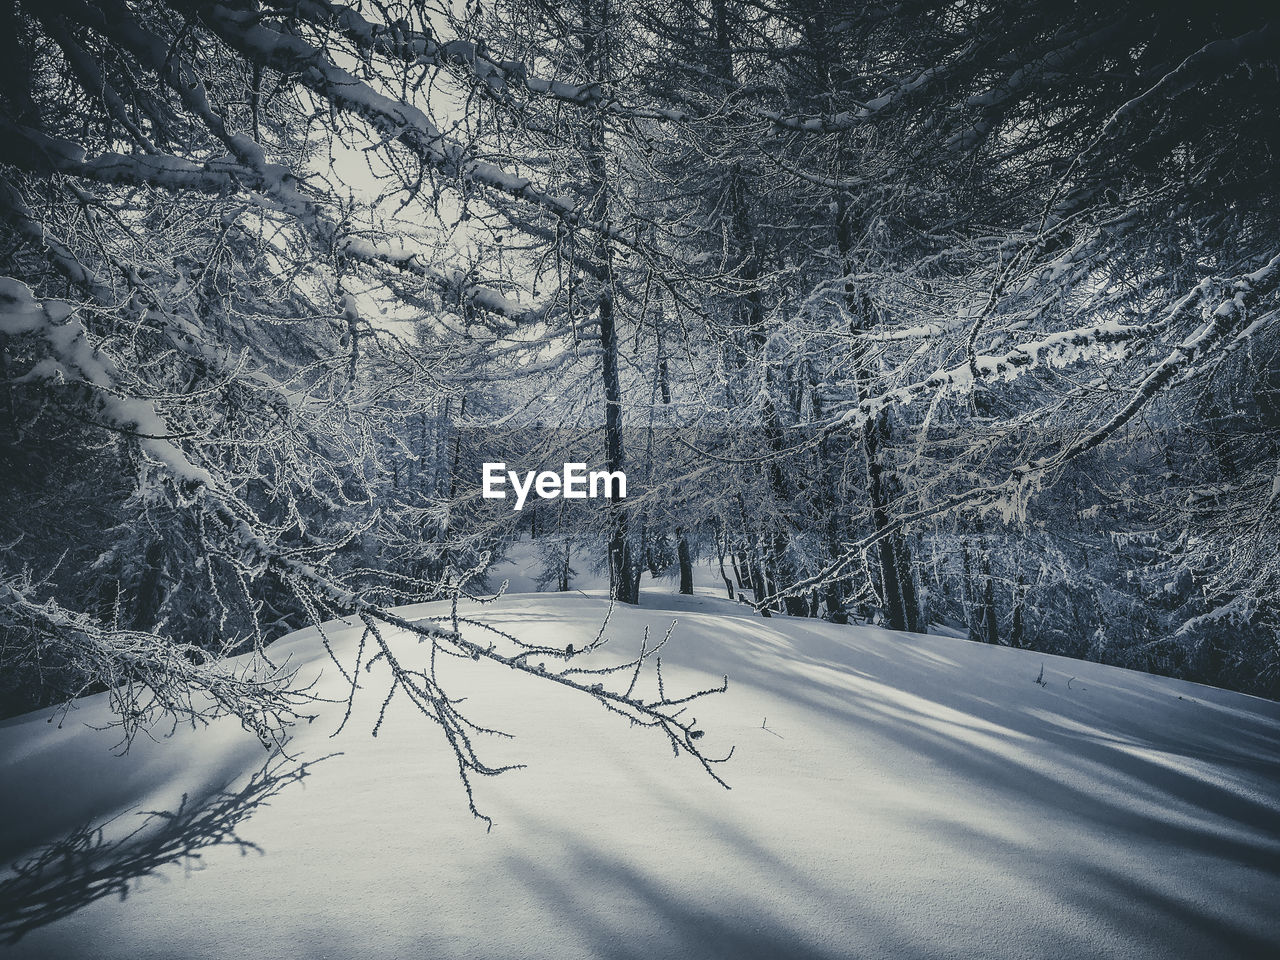 SNOW COVERED LAND TREES IN FOREST